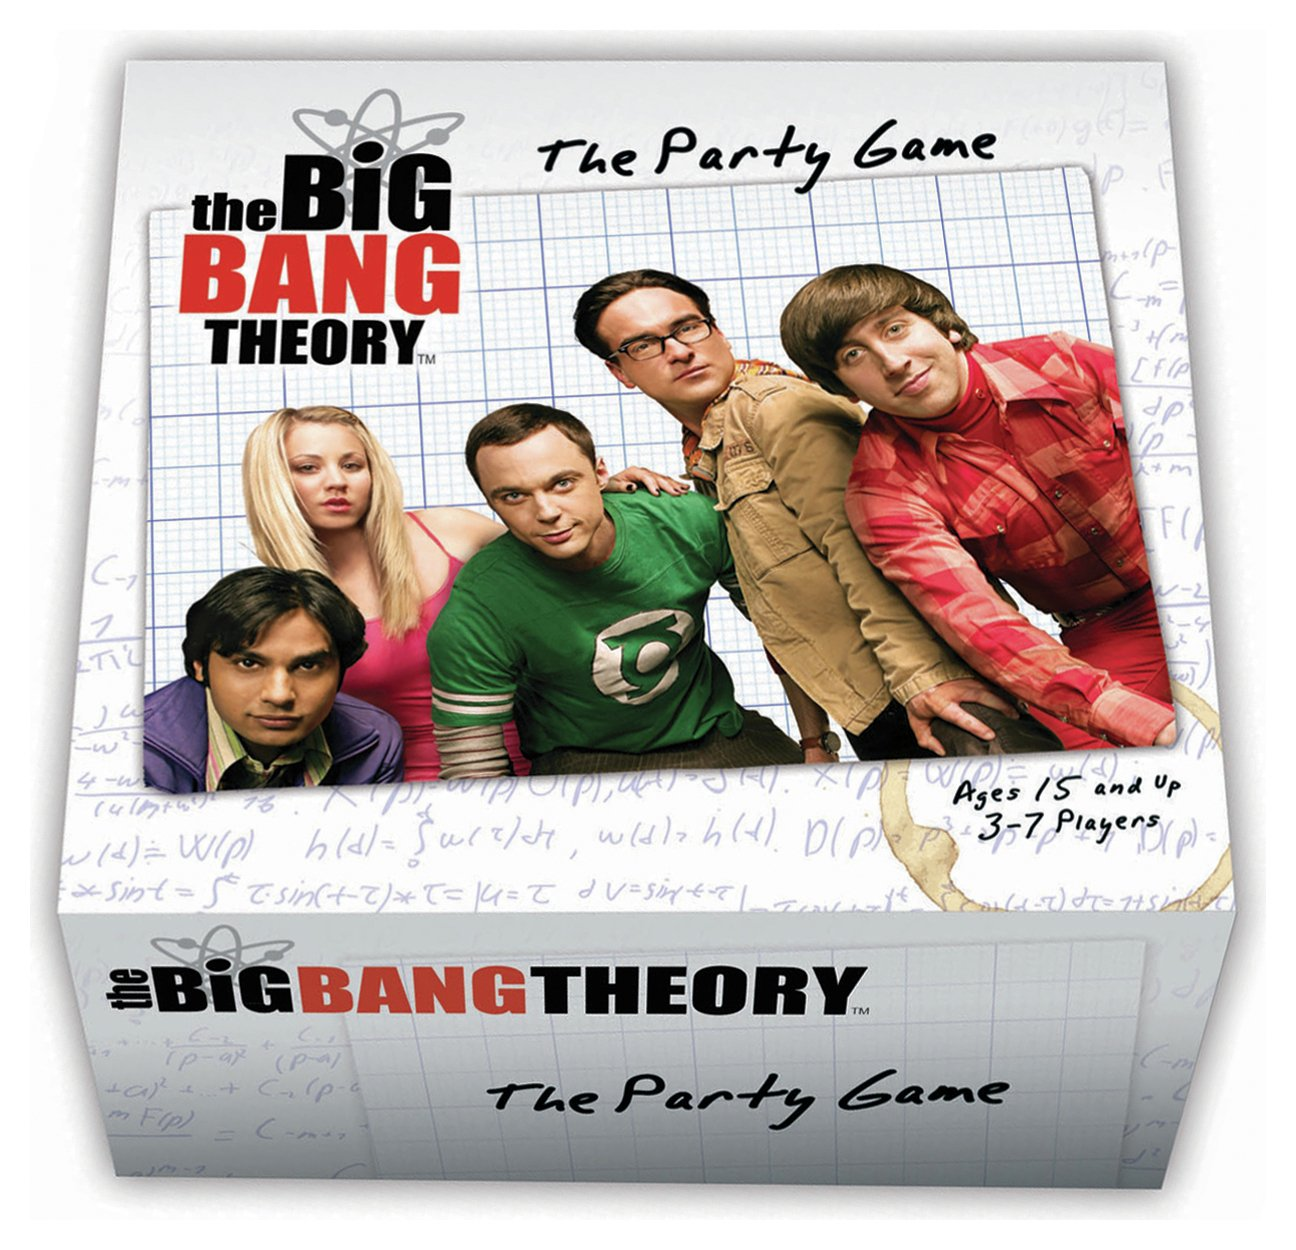 Image of Big Bang Theory Party Game.